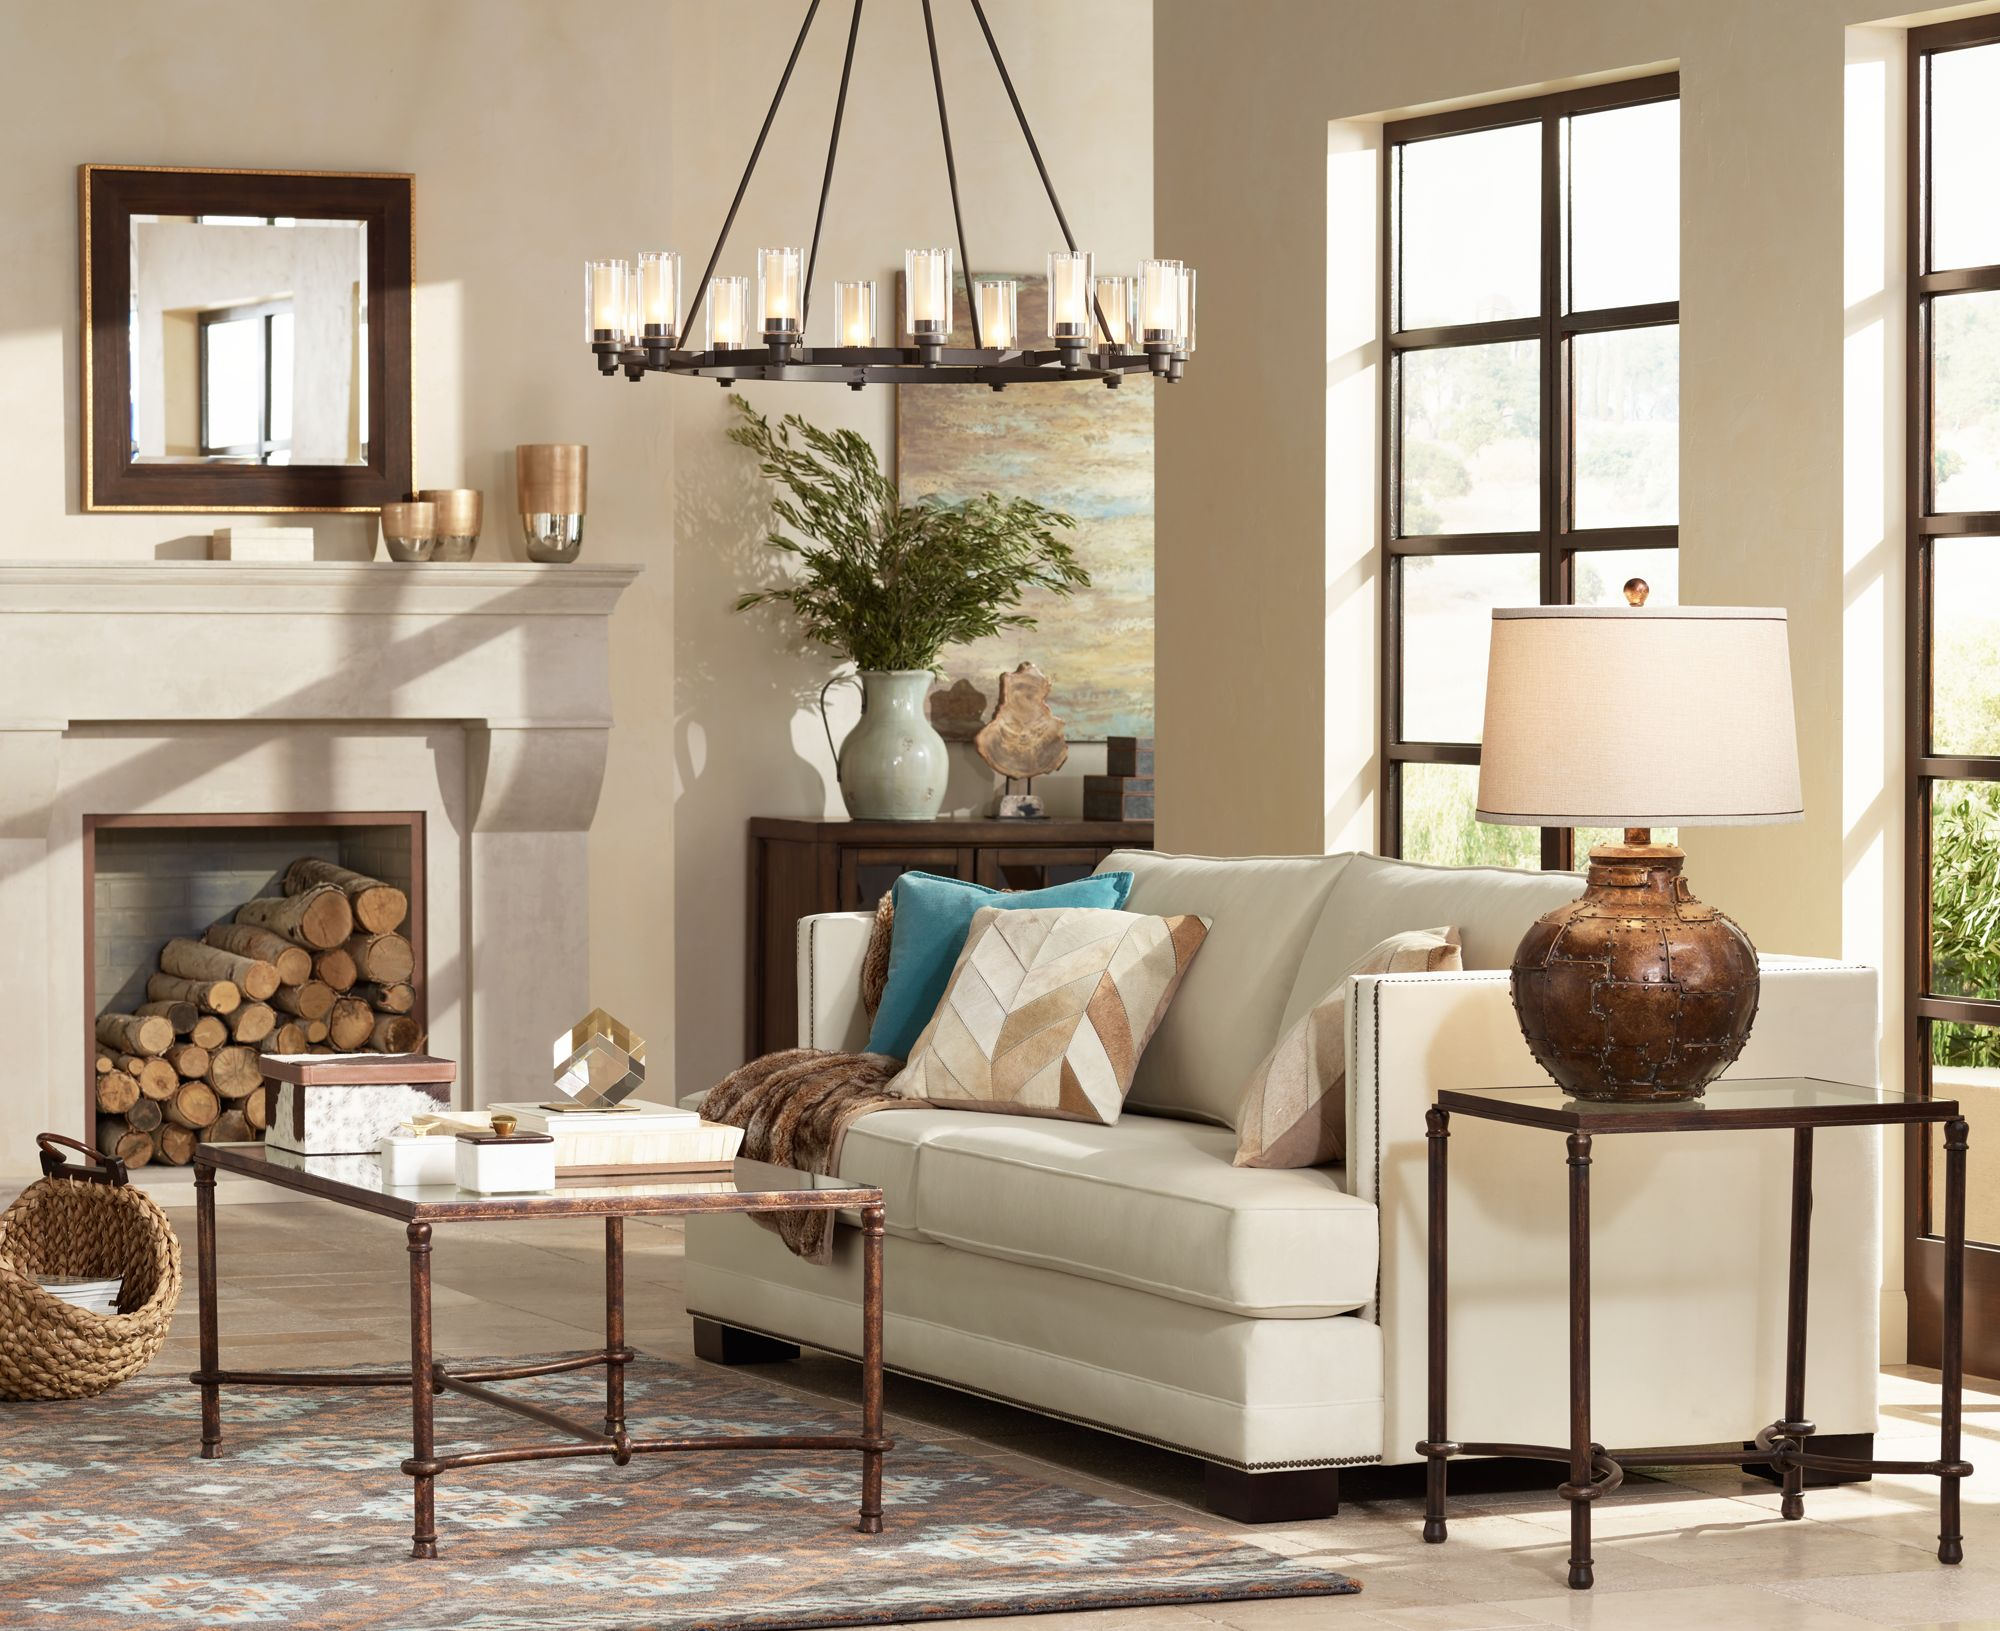 Ordinaire A Large Chandelier Anchors A Cozy Living Room With Rustic Touches.